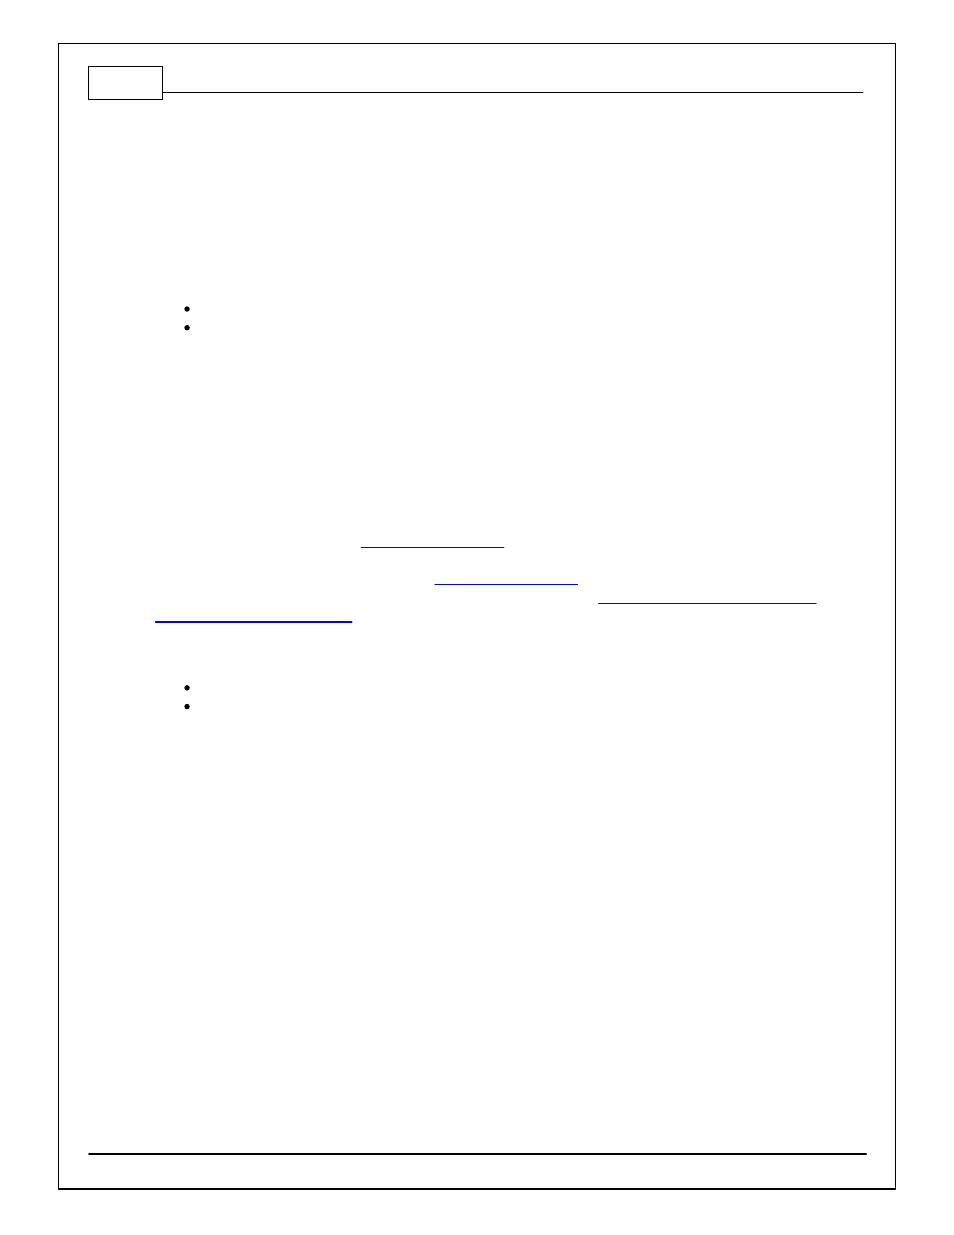 Overview, Getting started, Downloadable files   AEM 30-3508